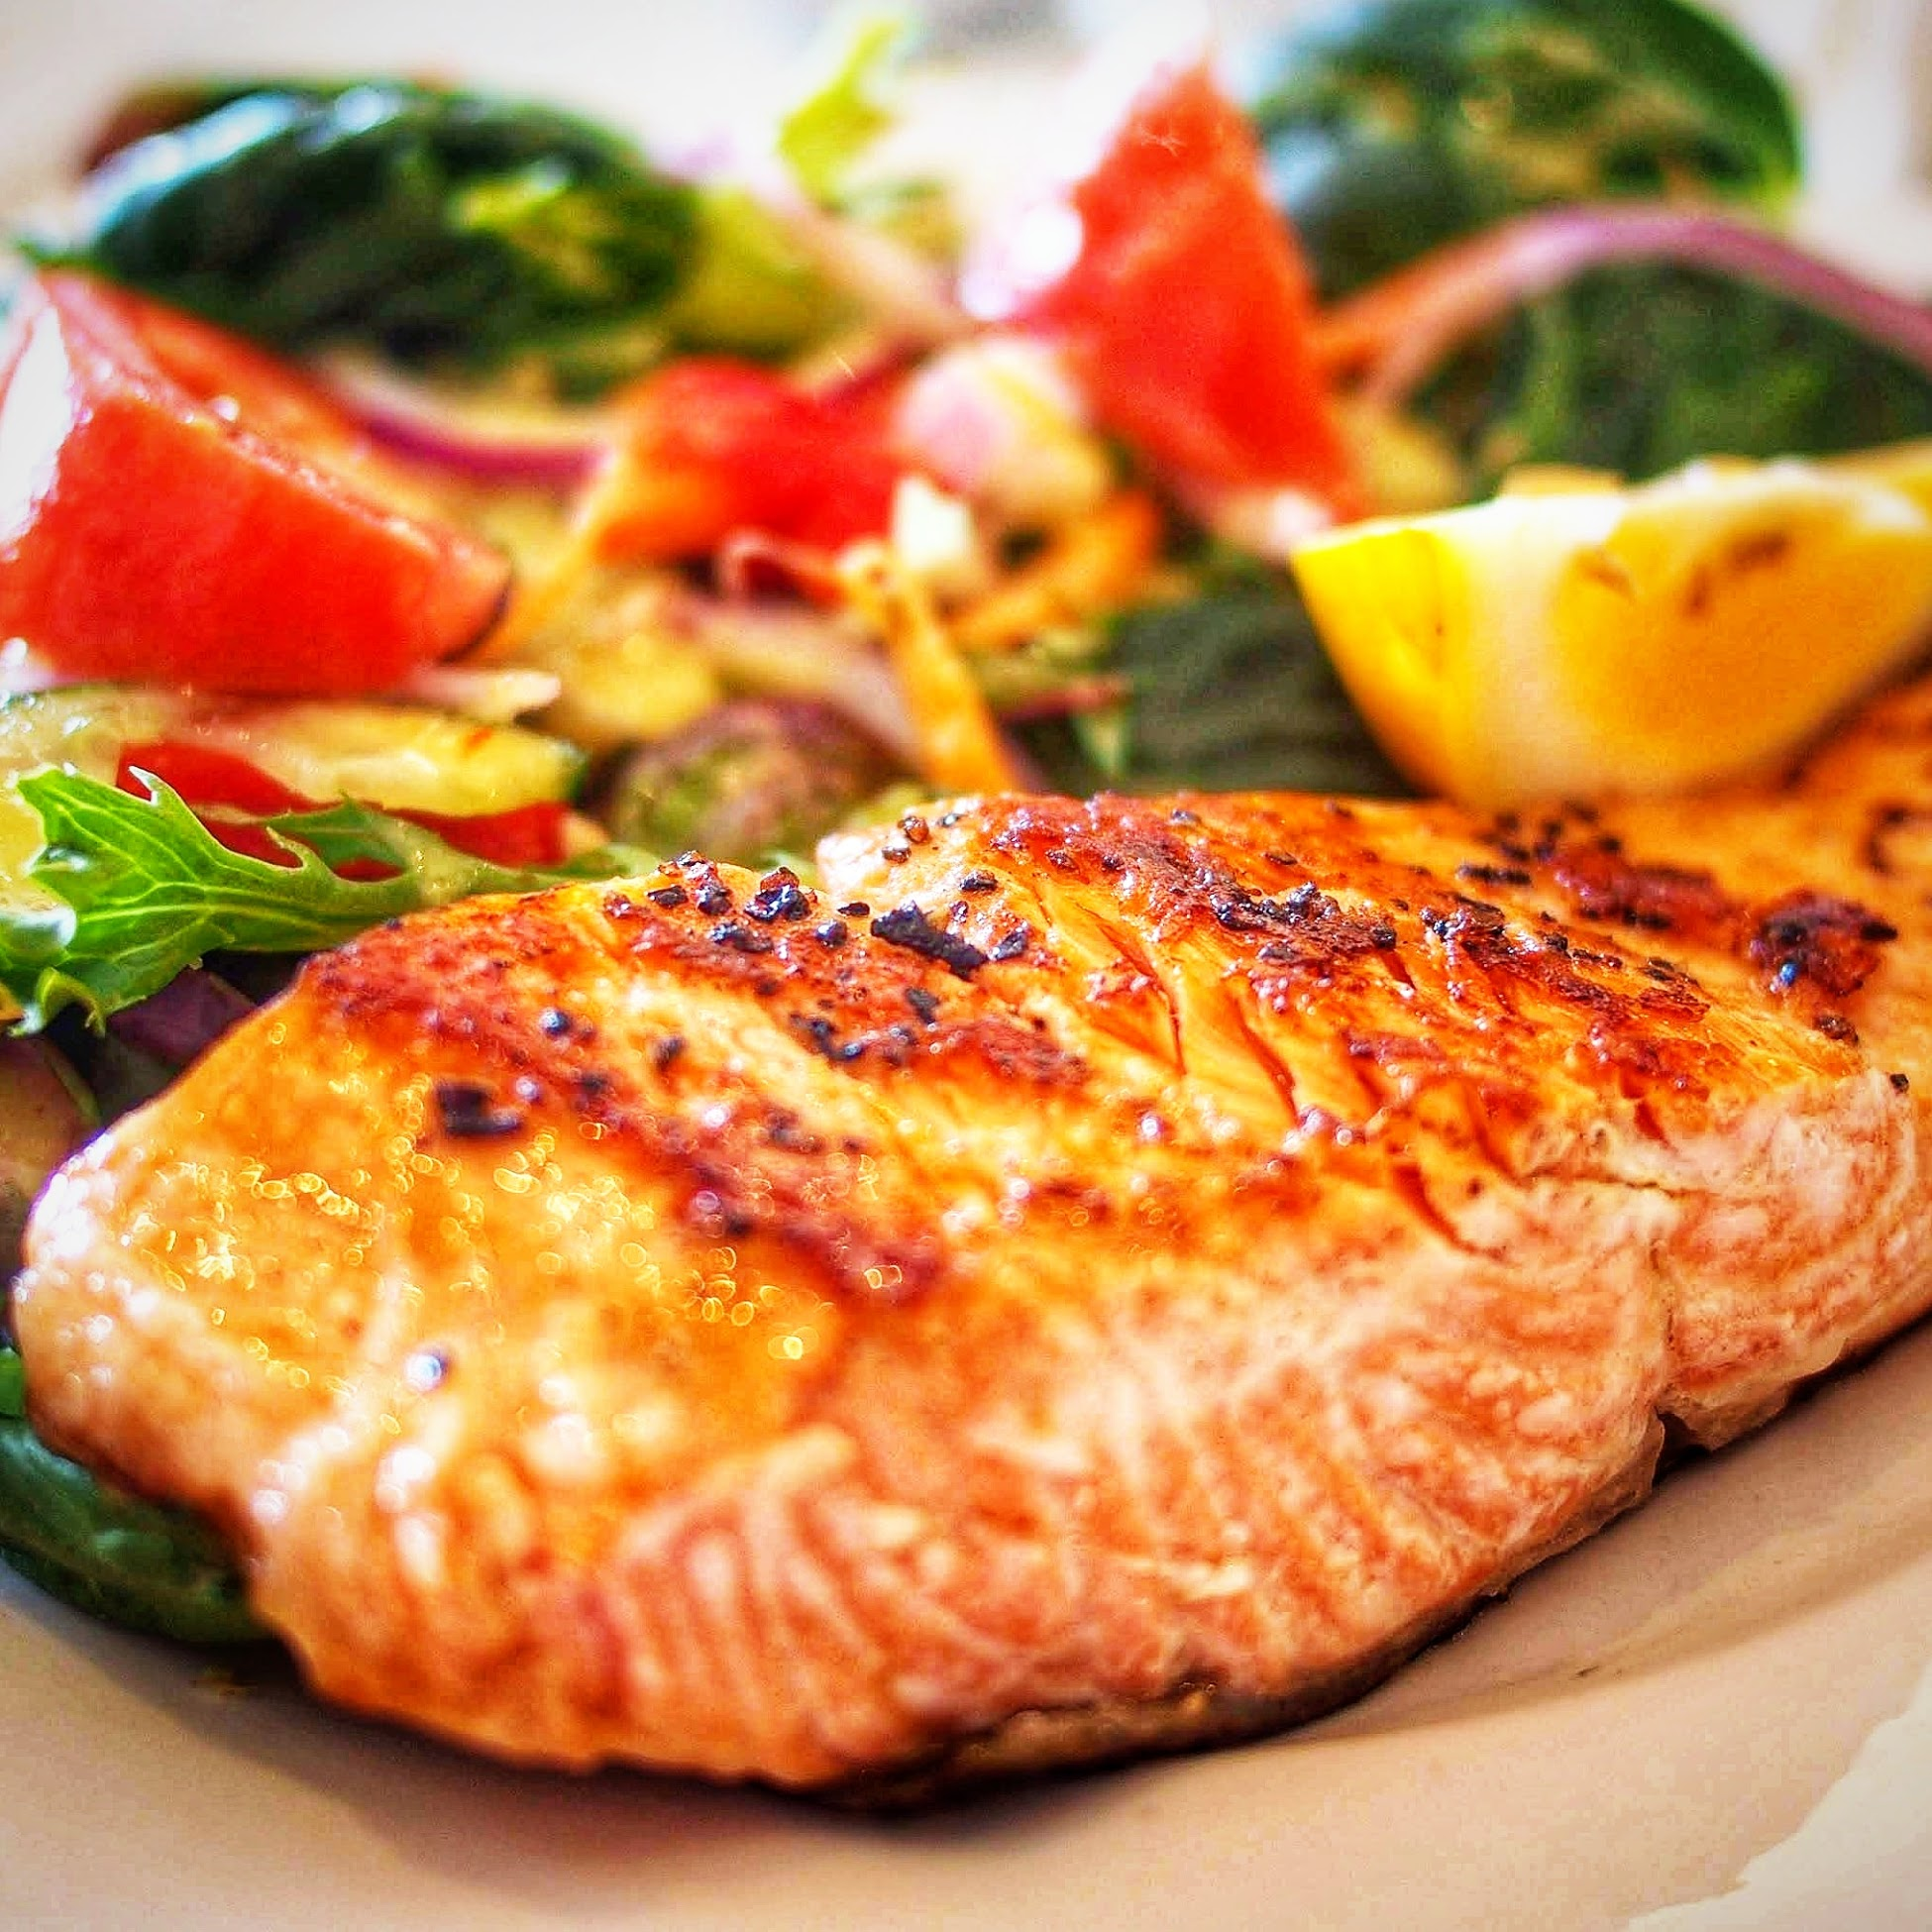 The Big Easy Salmon. - You already knew The Big Easy Oil-less Fryer was amazing for chicken, turkey and ribs but did you know that it can even cook delicious salmon fillets?